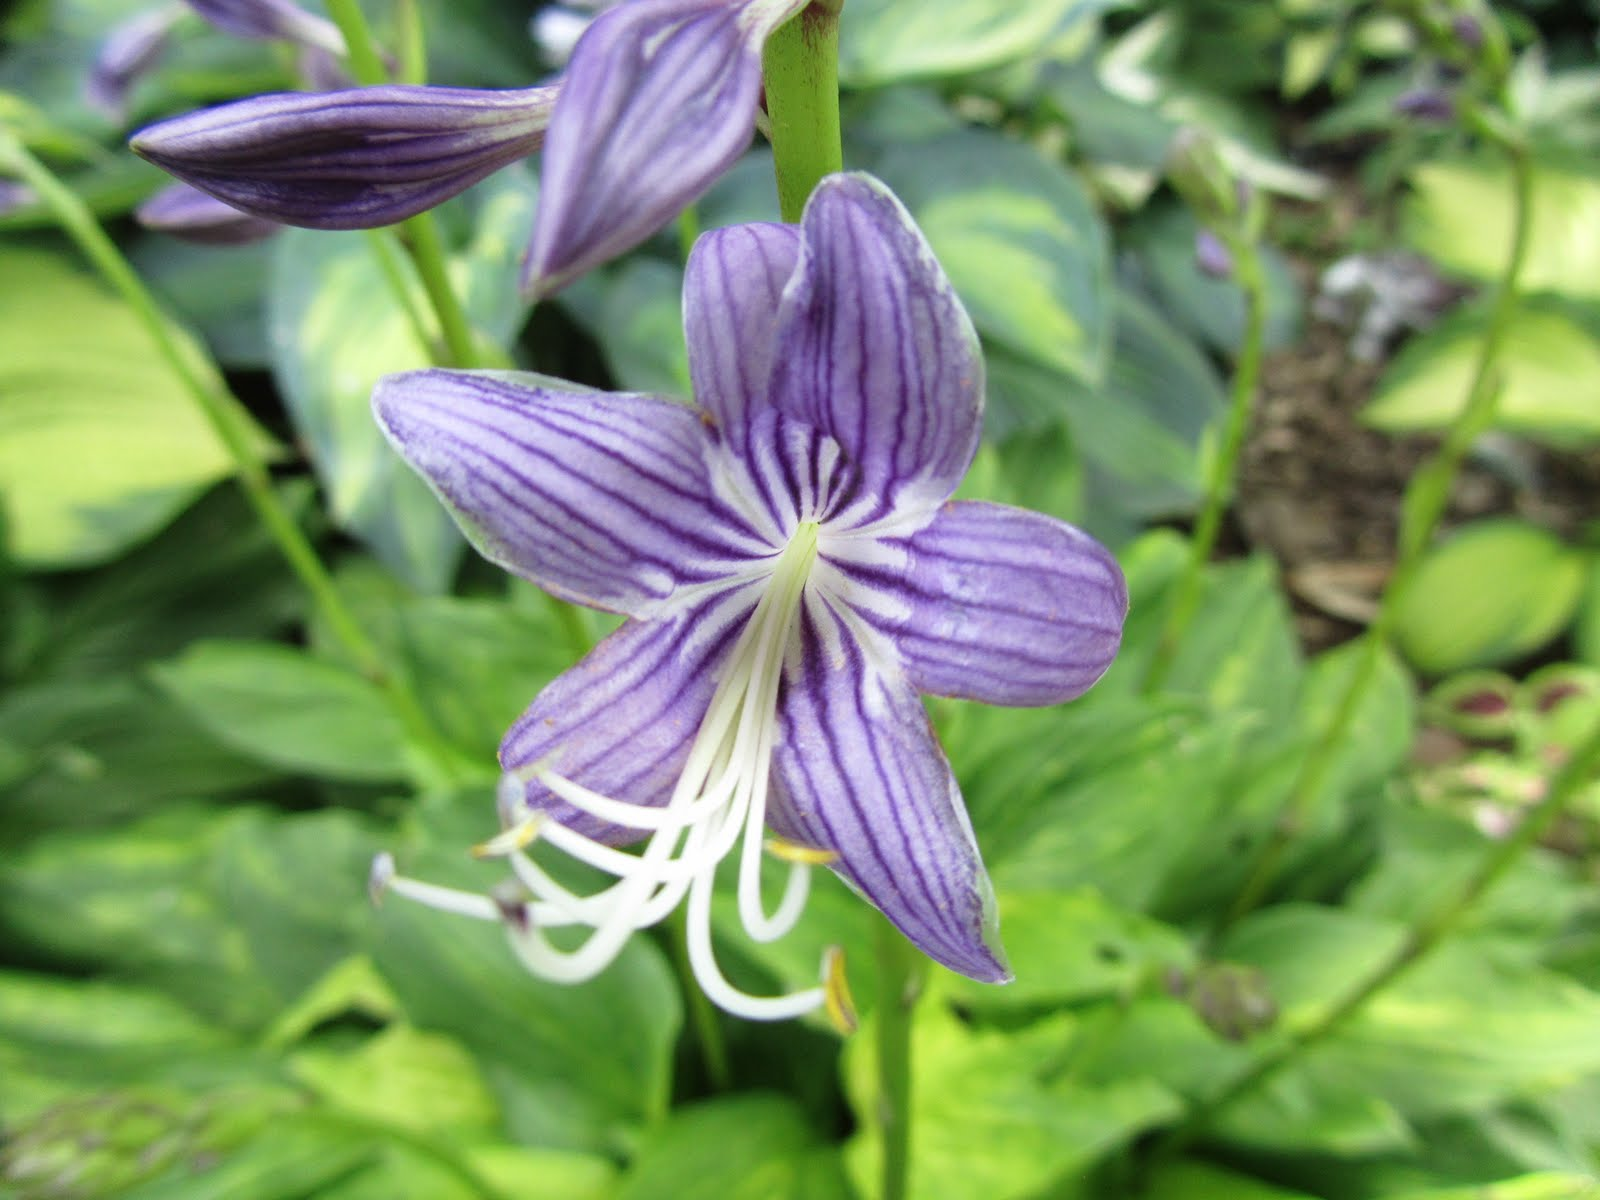 Cheesehead Gardening: The Often Overlooked Hosta Flower